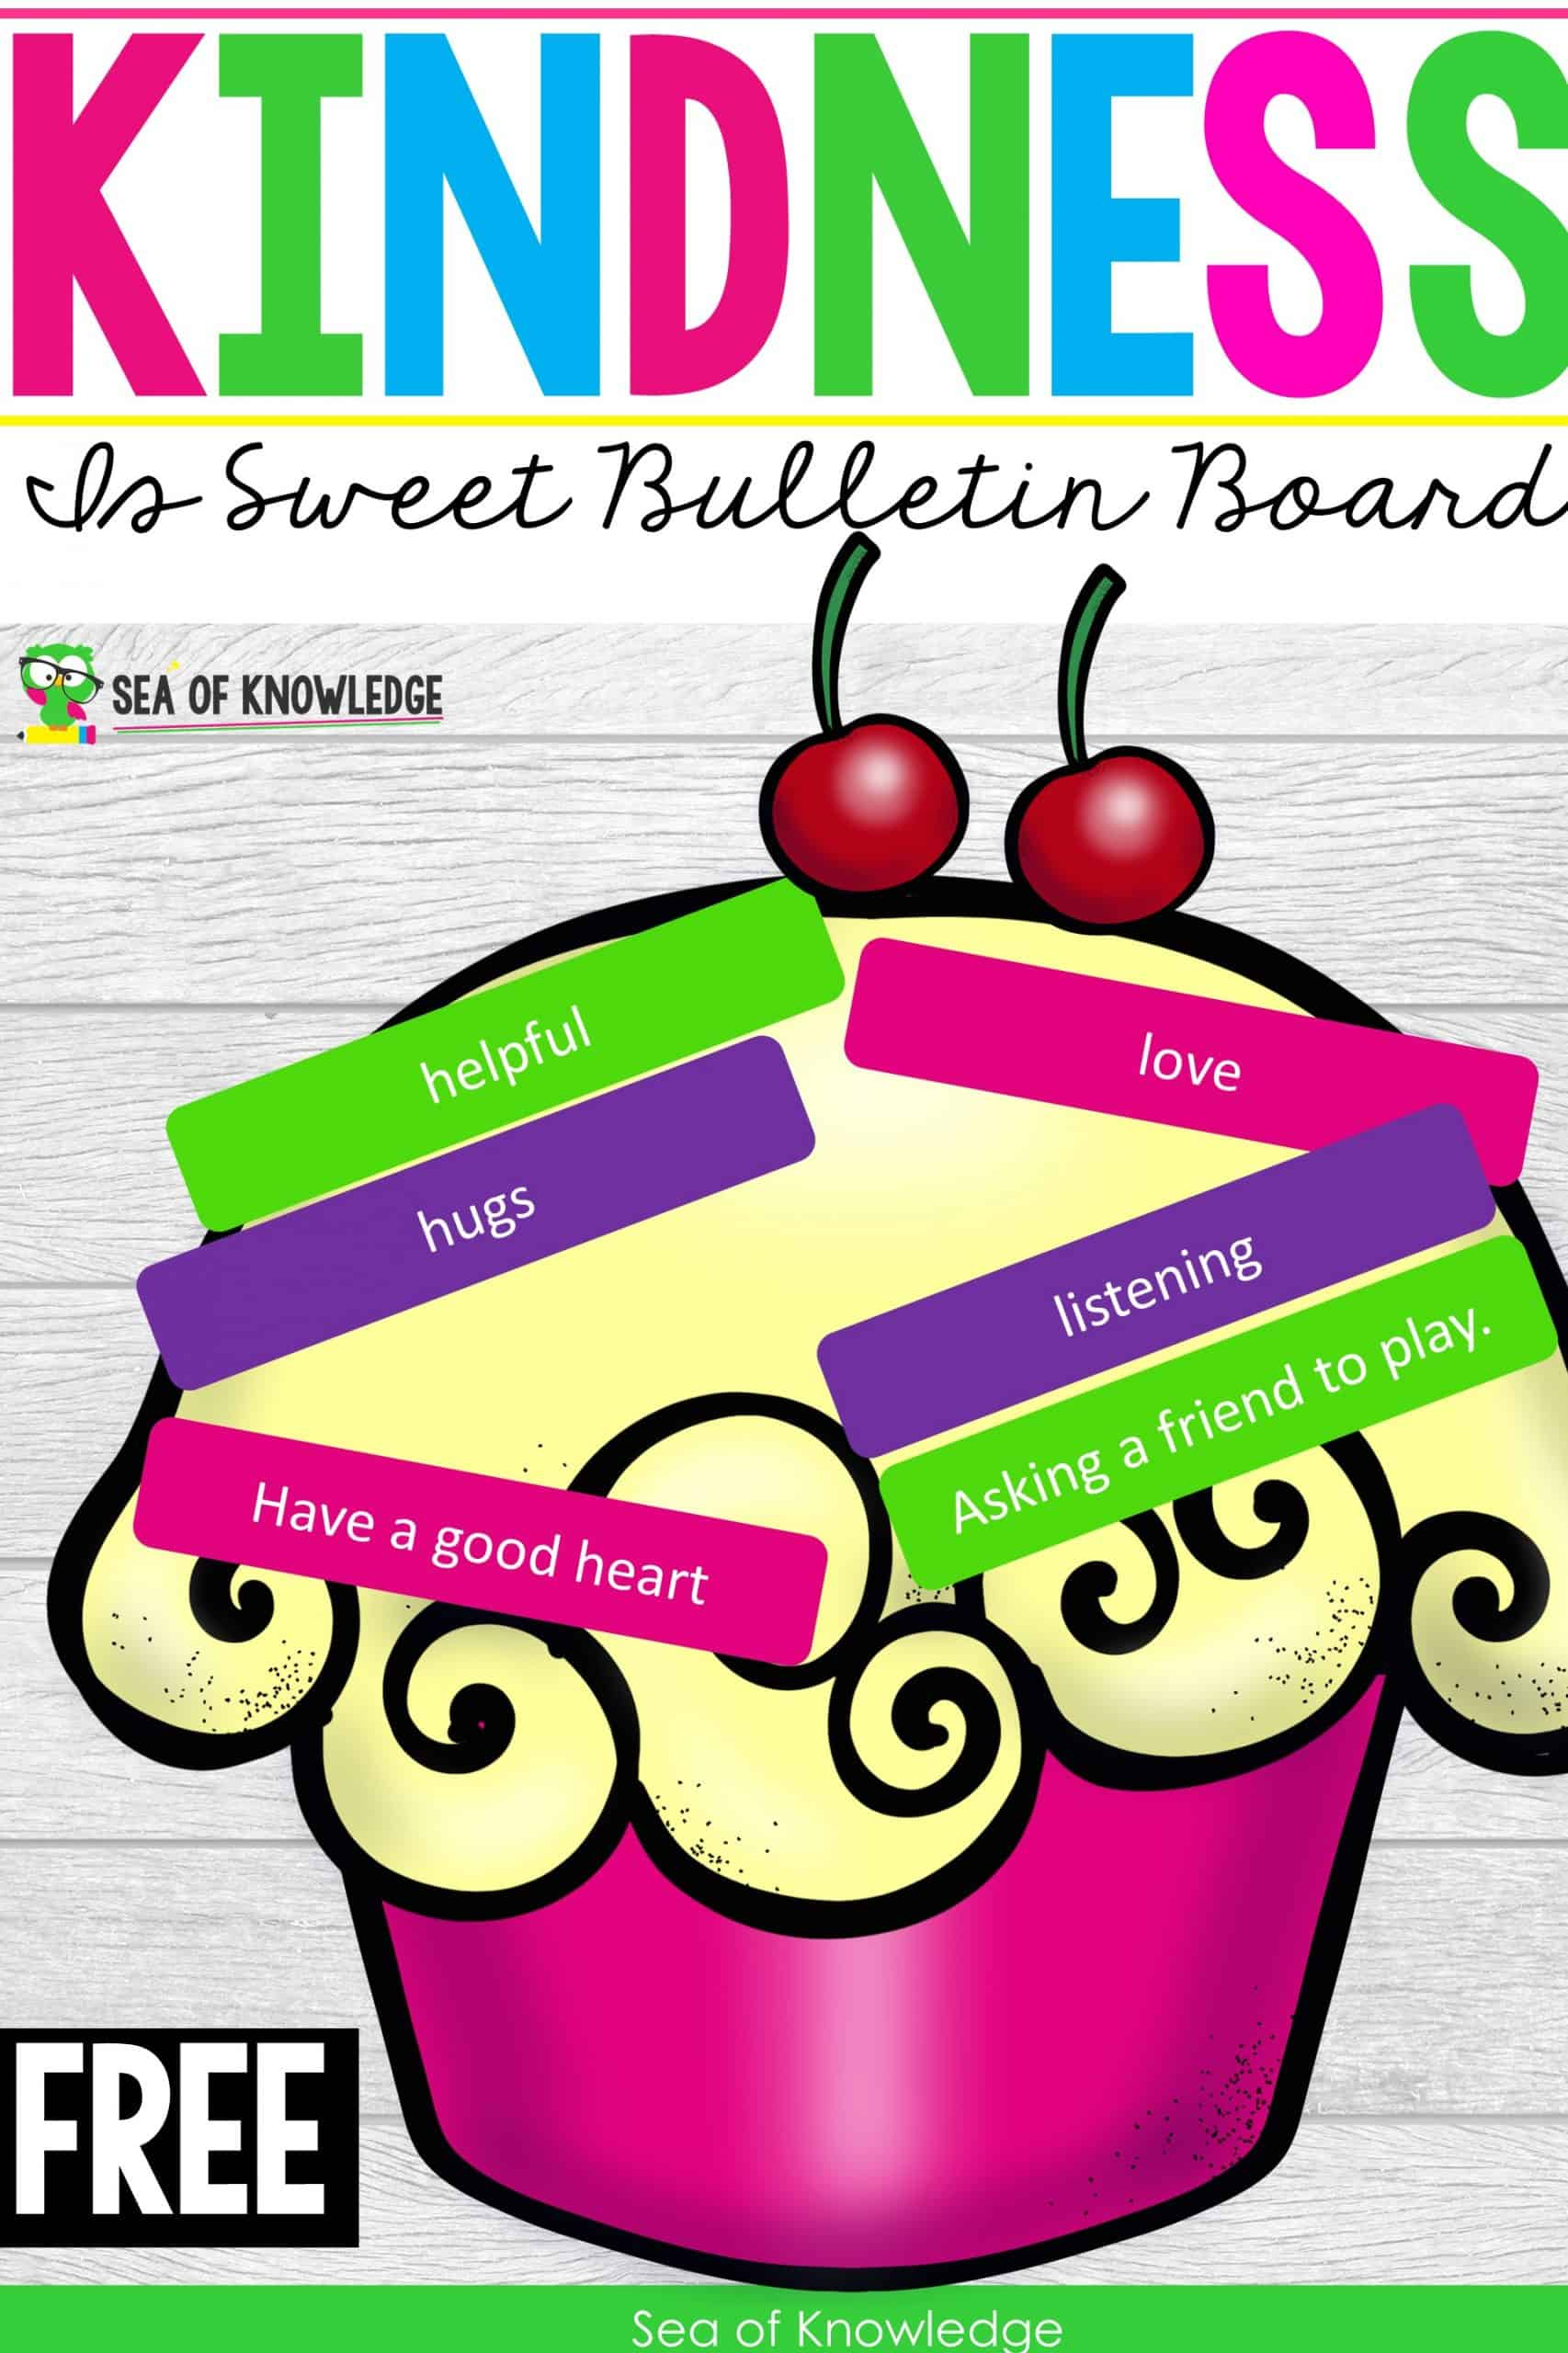 Kindness is Sweet Bulletin Board Ideas Ice Cream Templates inside!